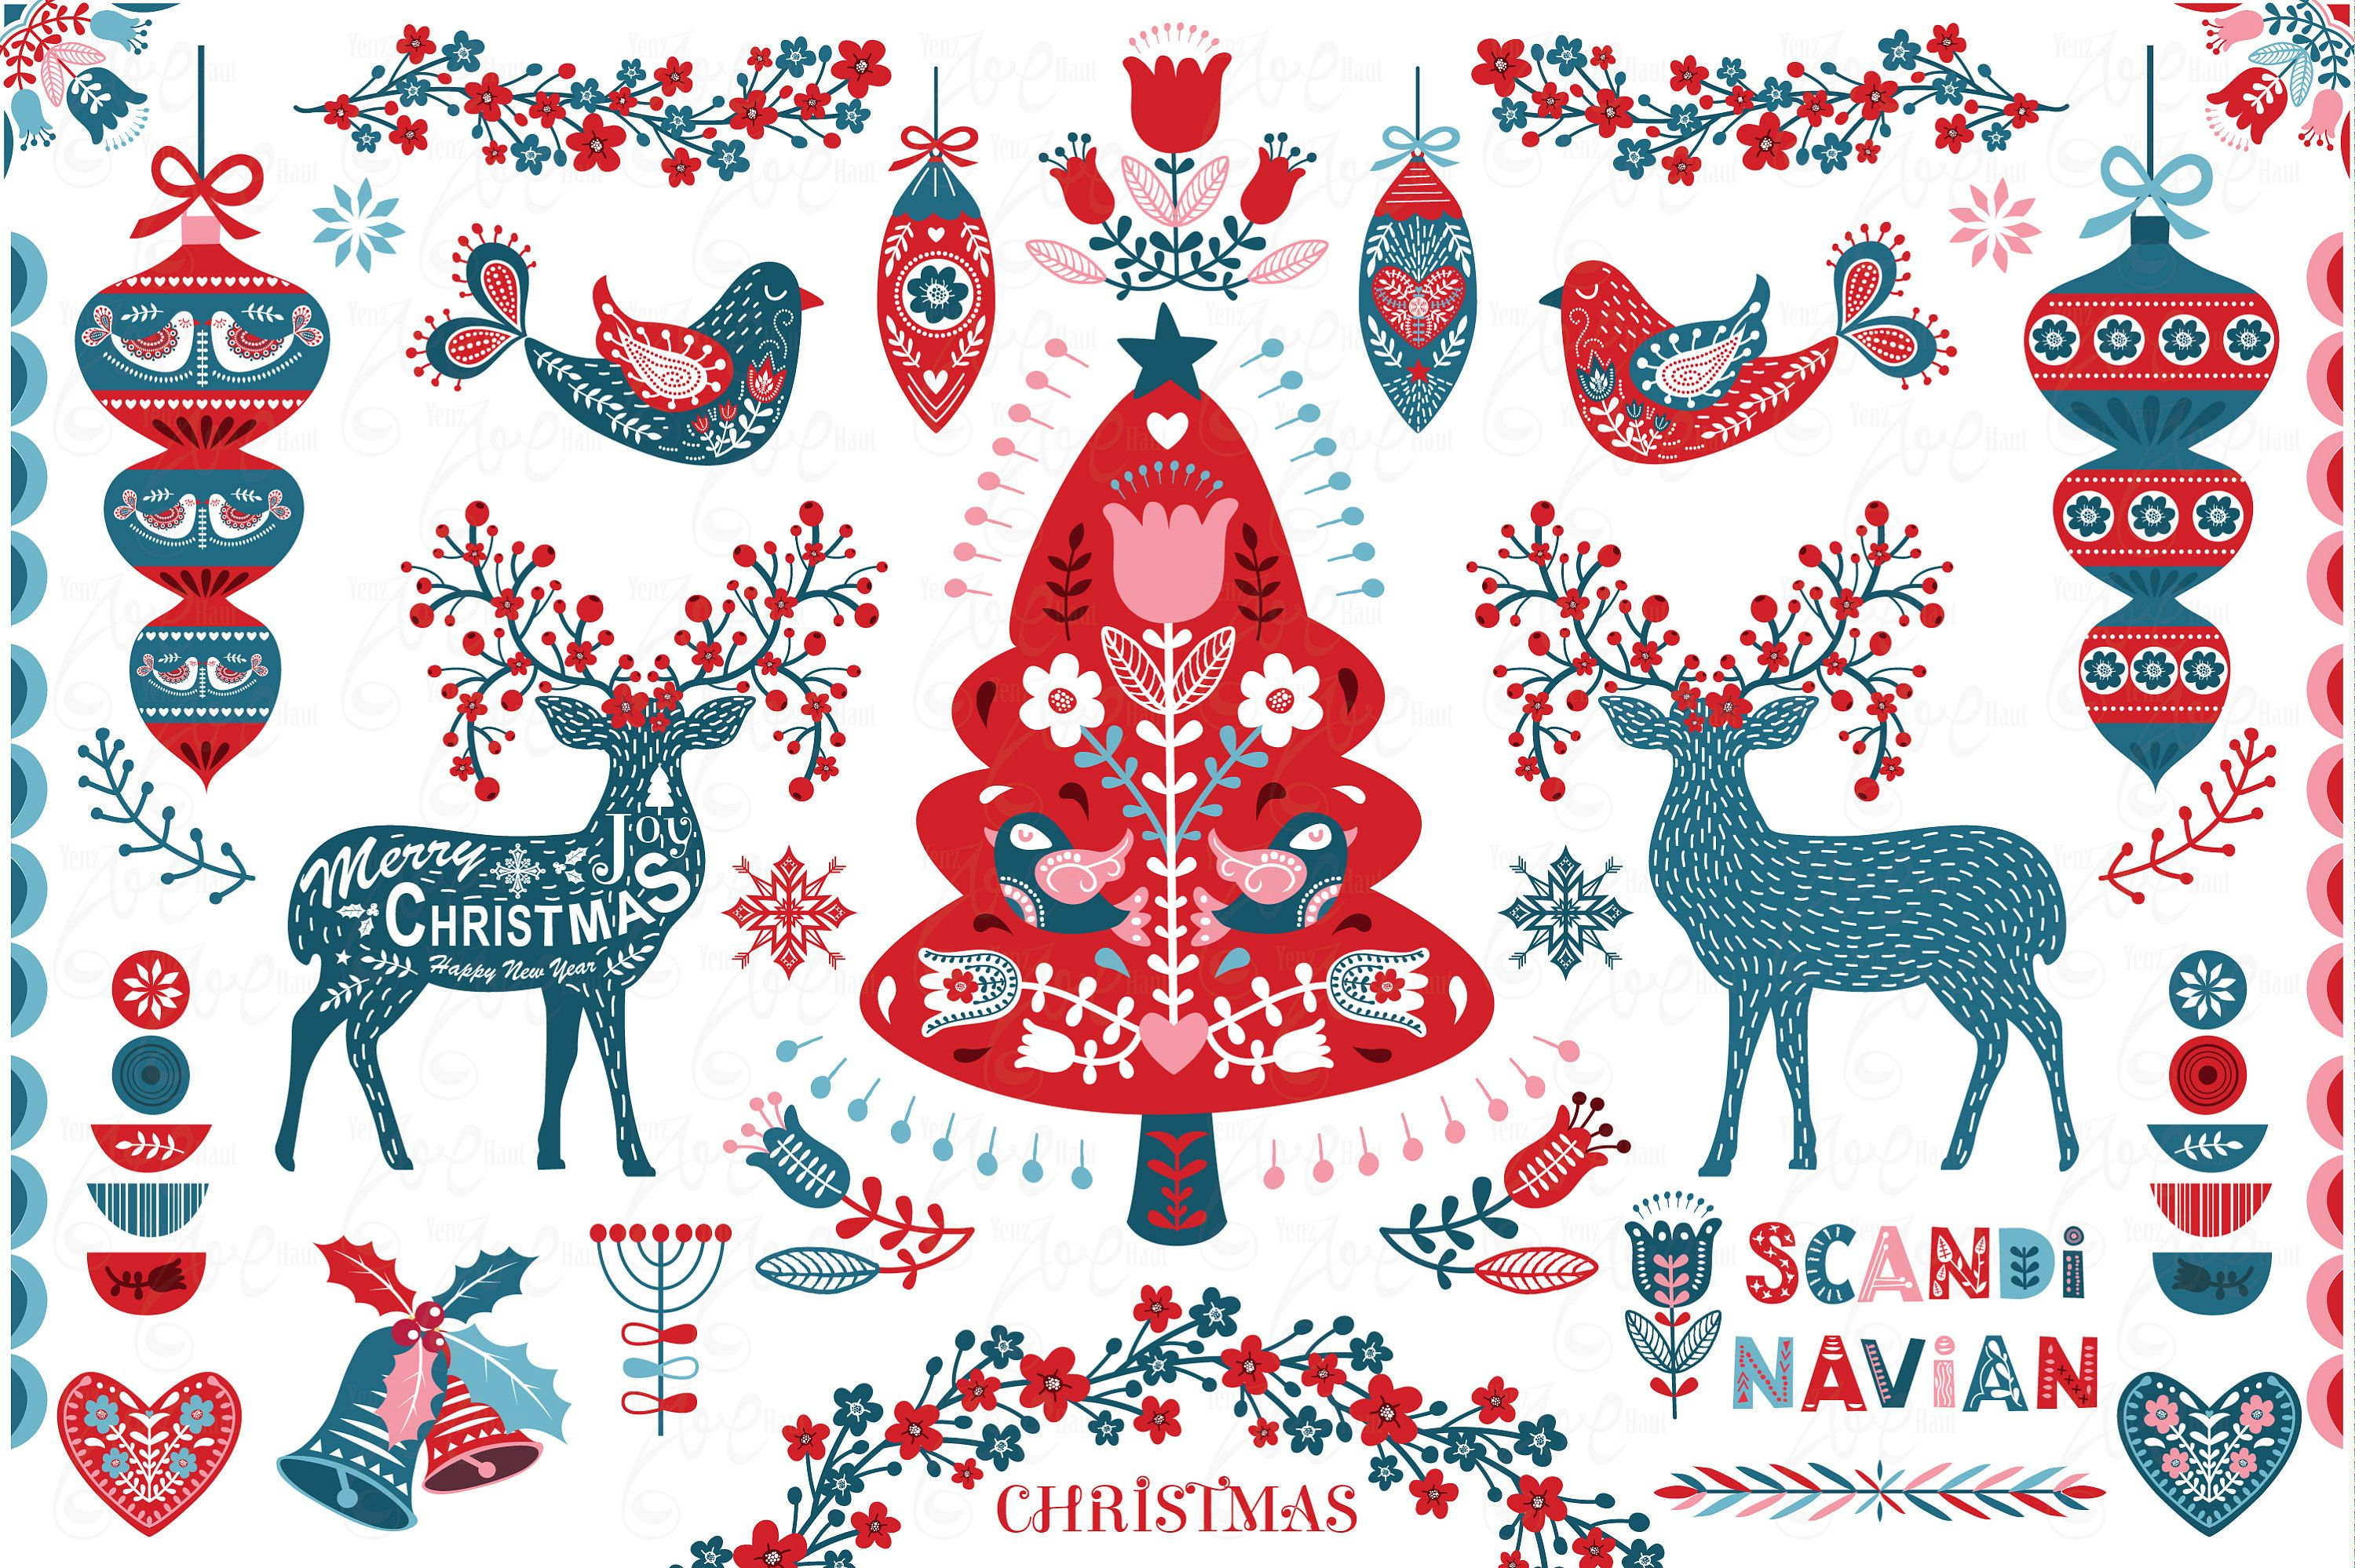 Scandinavian Christmas Clipart Folk Art Christmas Christmas Etsy In 2020 Scandinavian Christmas Christmas Watercolor Clip Art